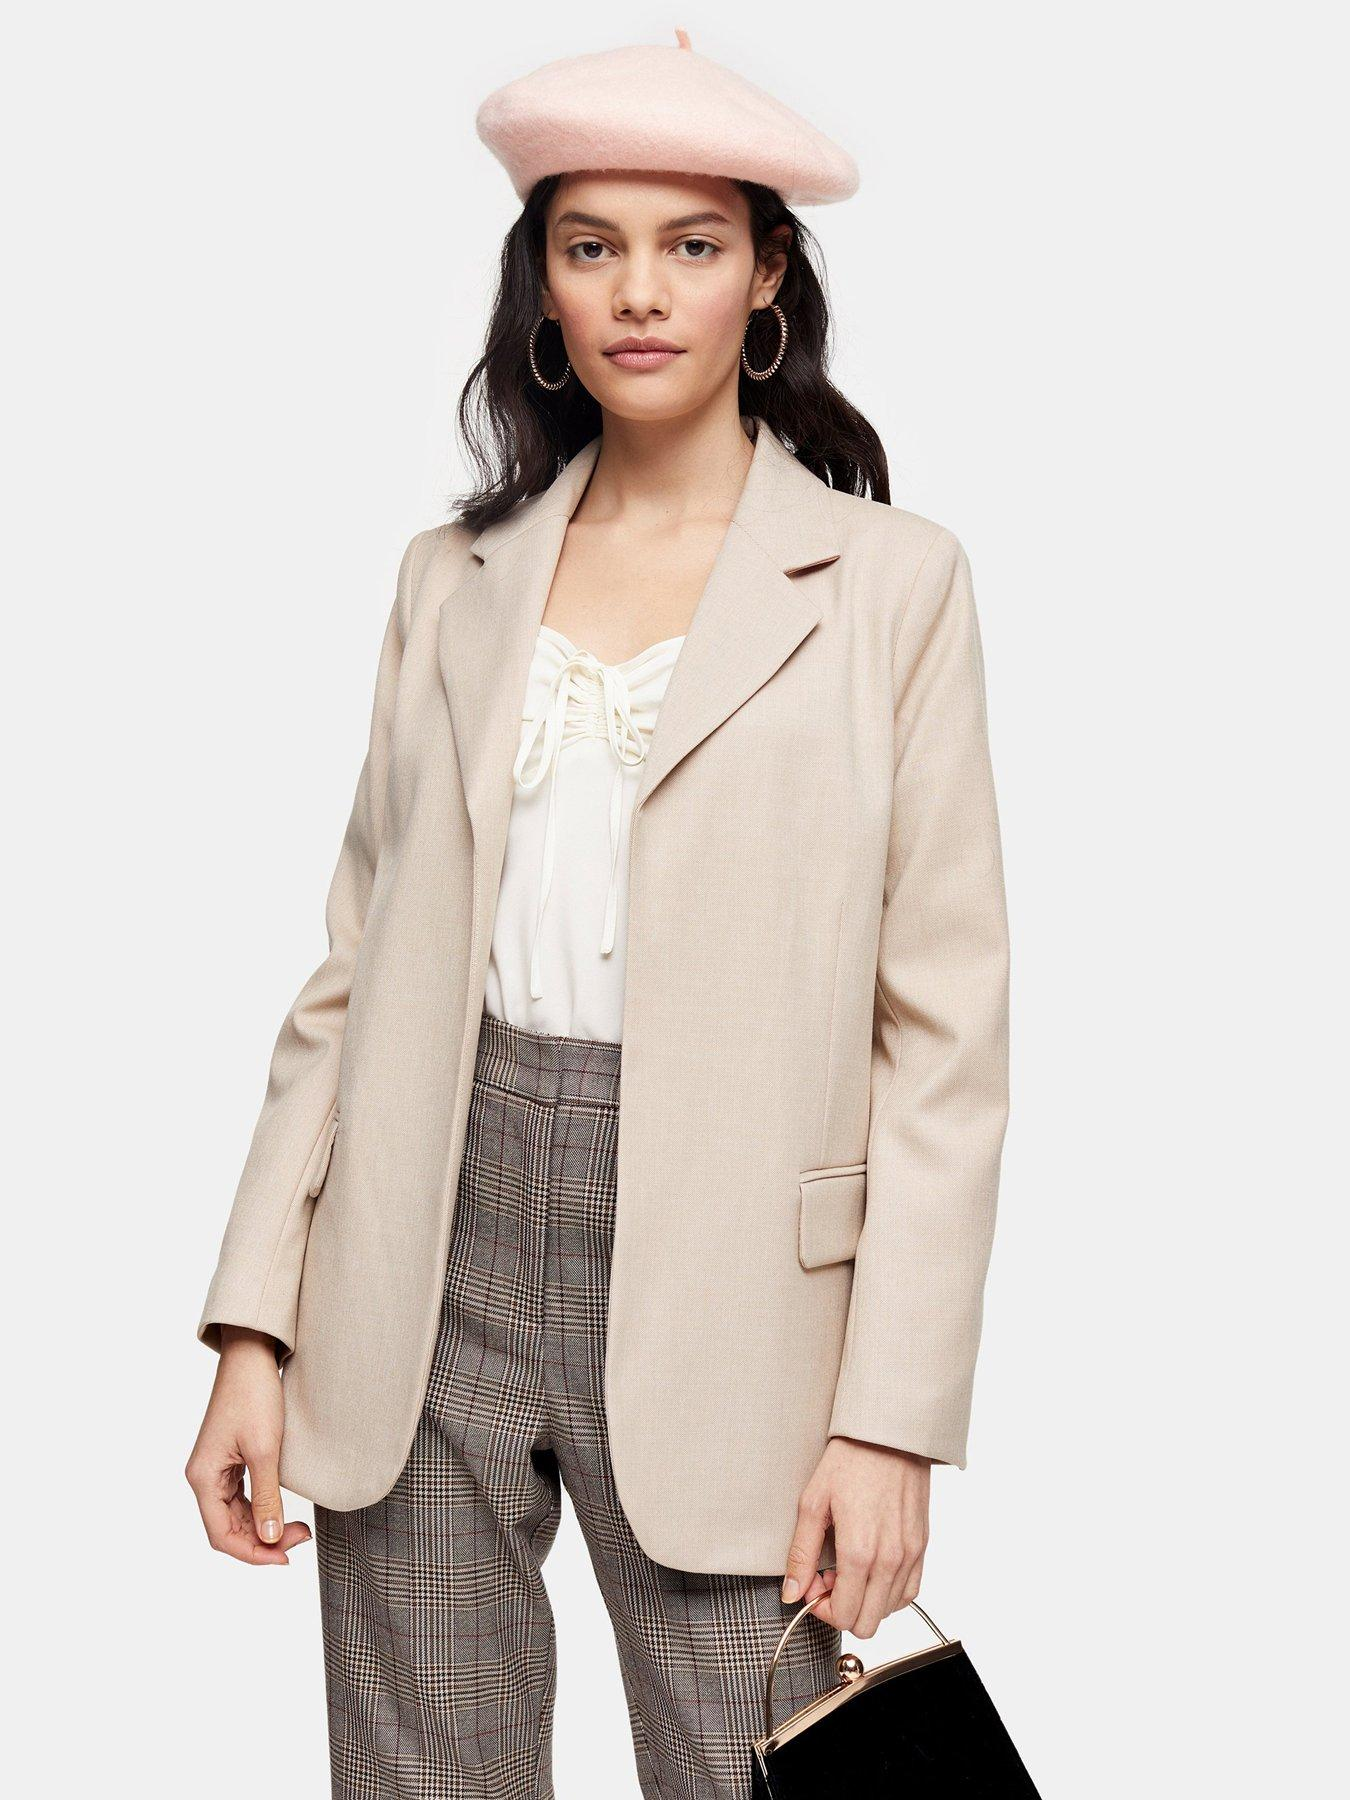 Stone Size 12,14 UK Ladies New Fitted Double Breasted Tie Belt Blazer In White